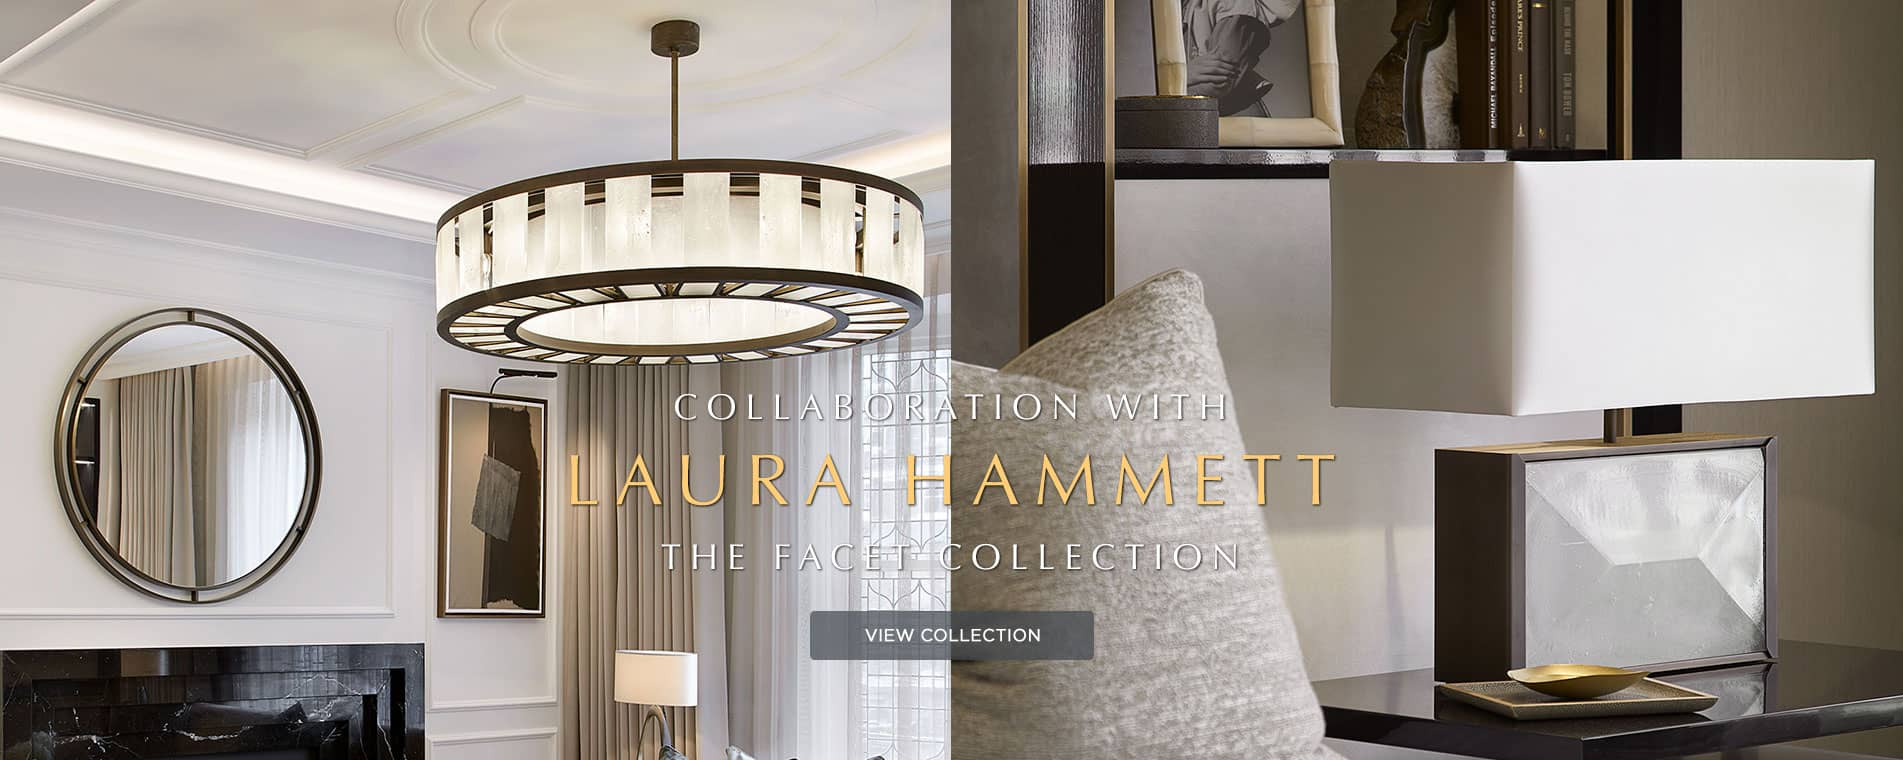 Collaboration with Laura Hammet